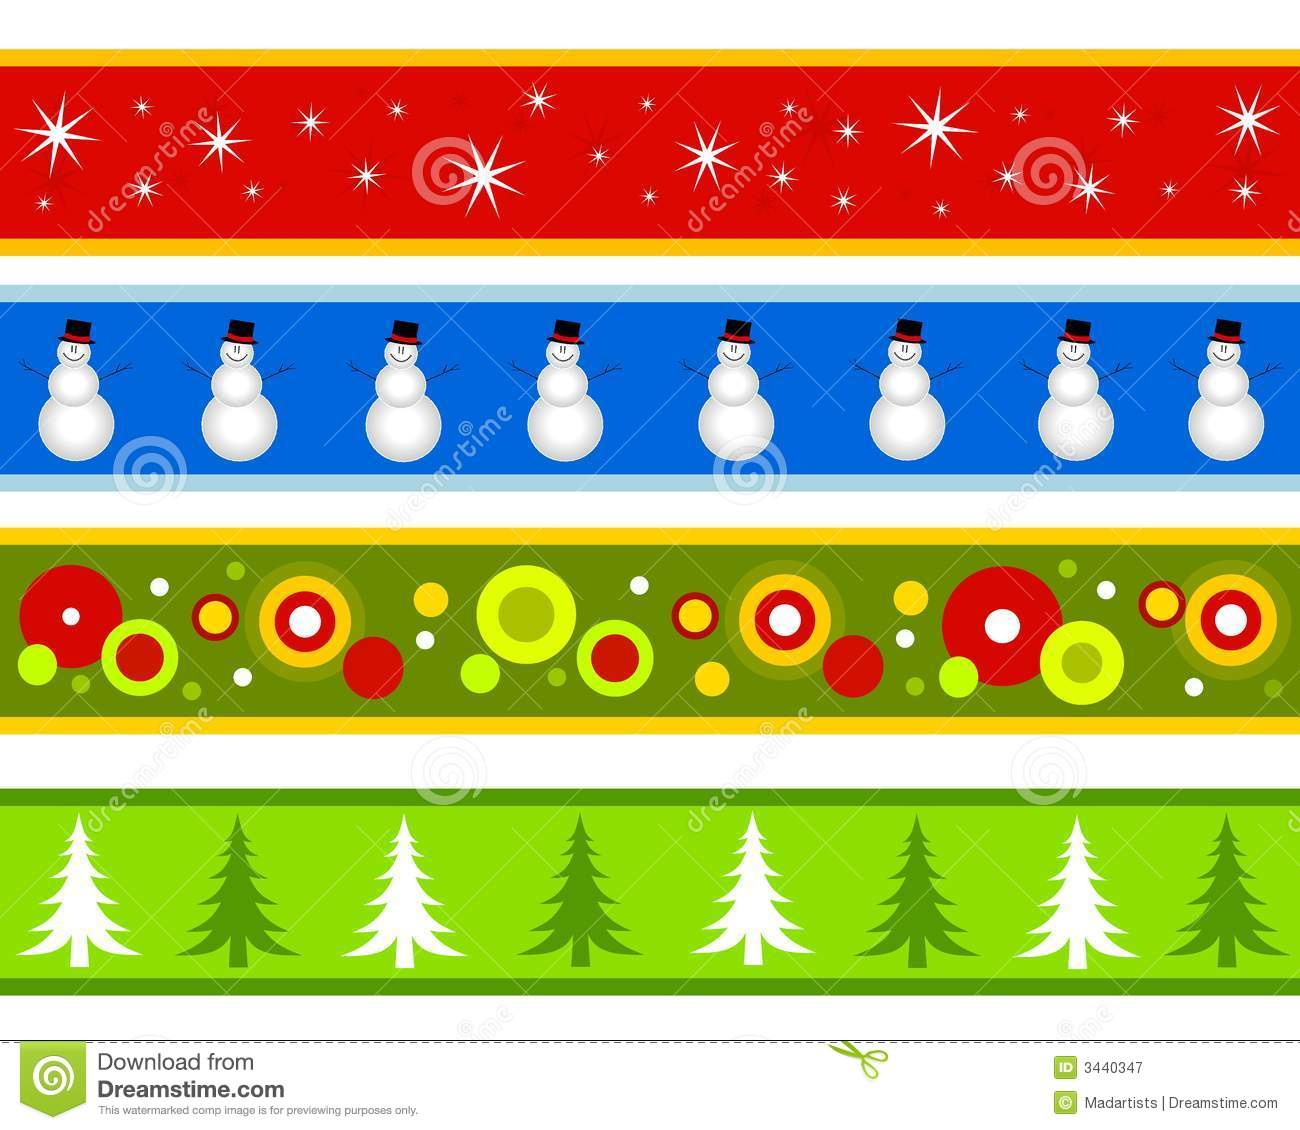 hight resolution of christmas borders or banners